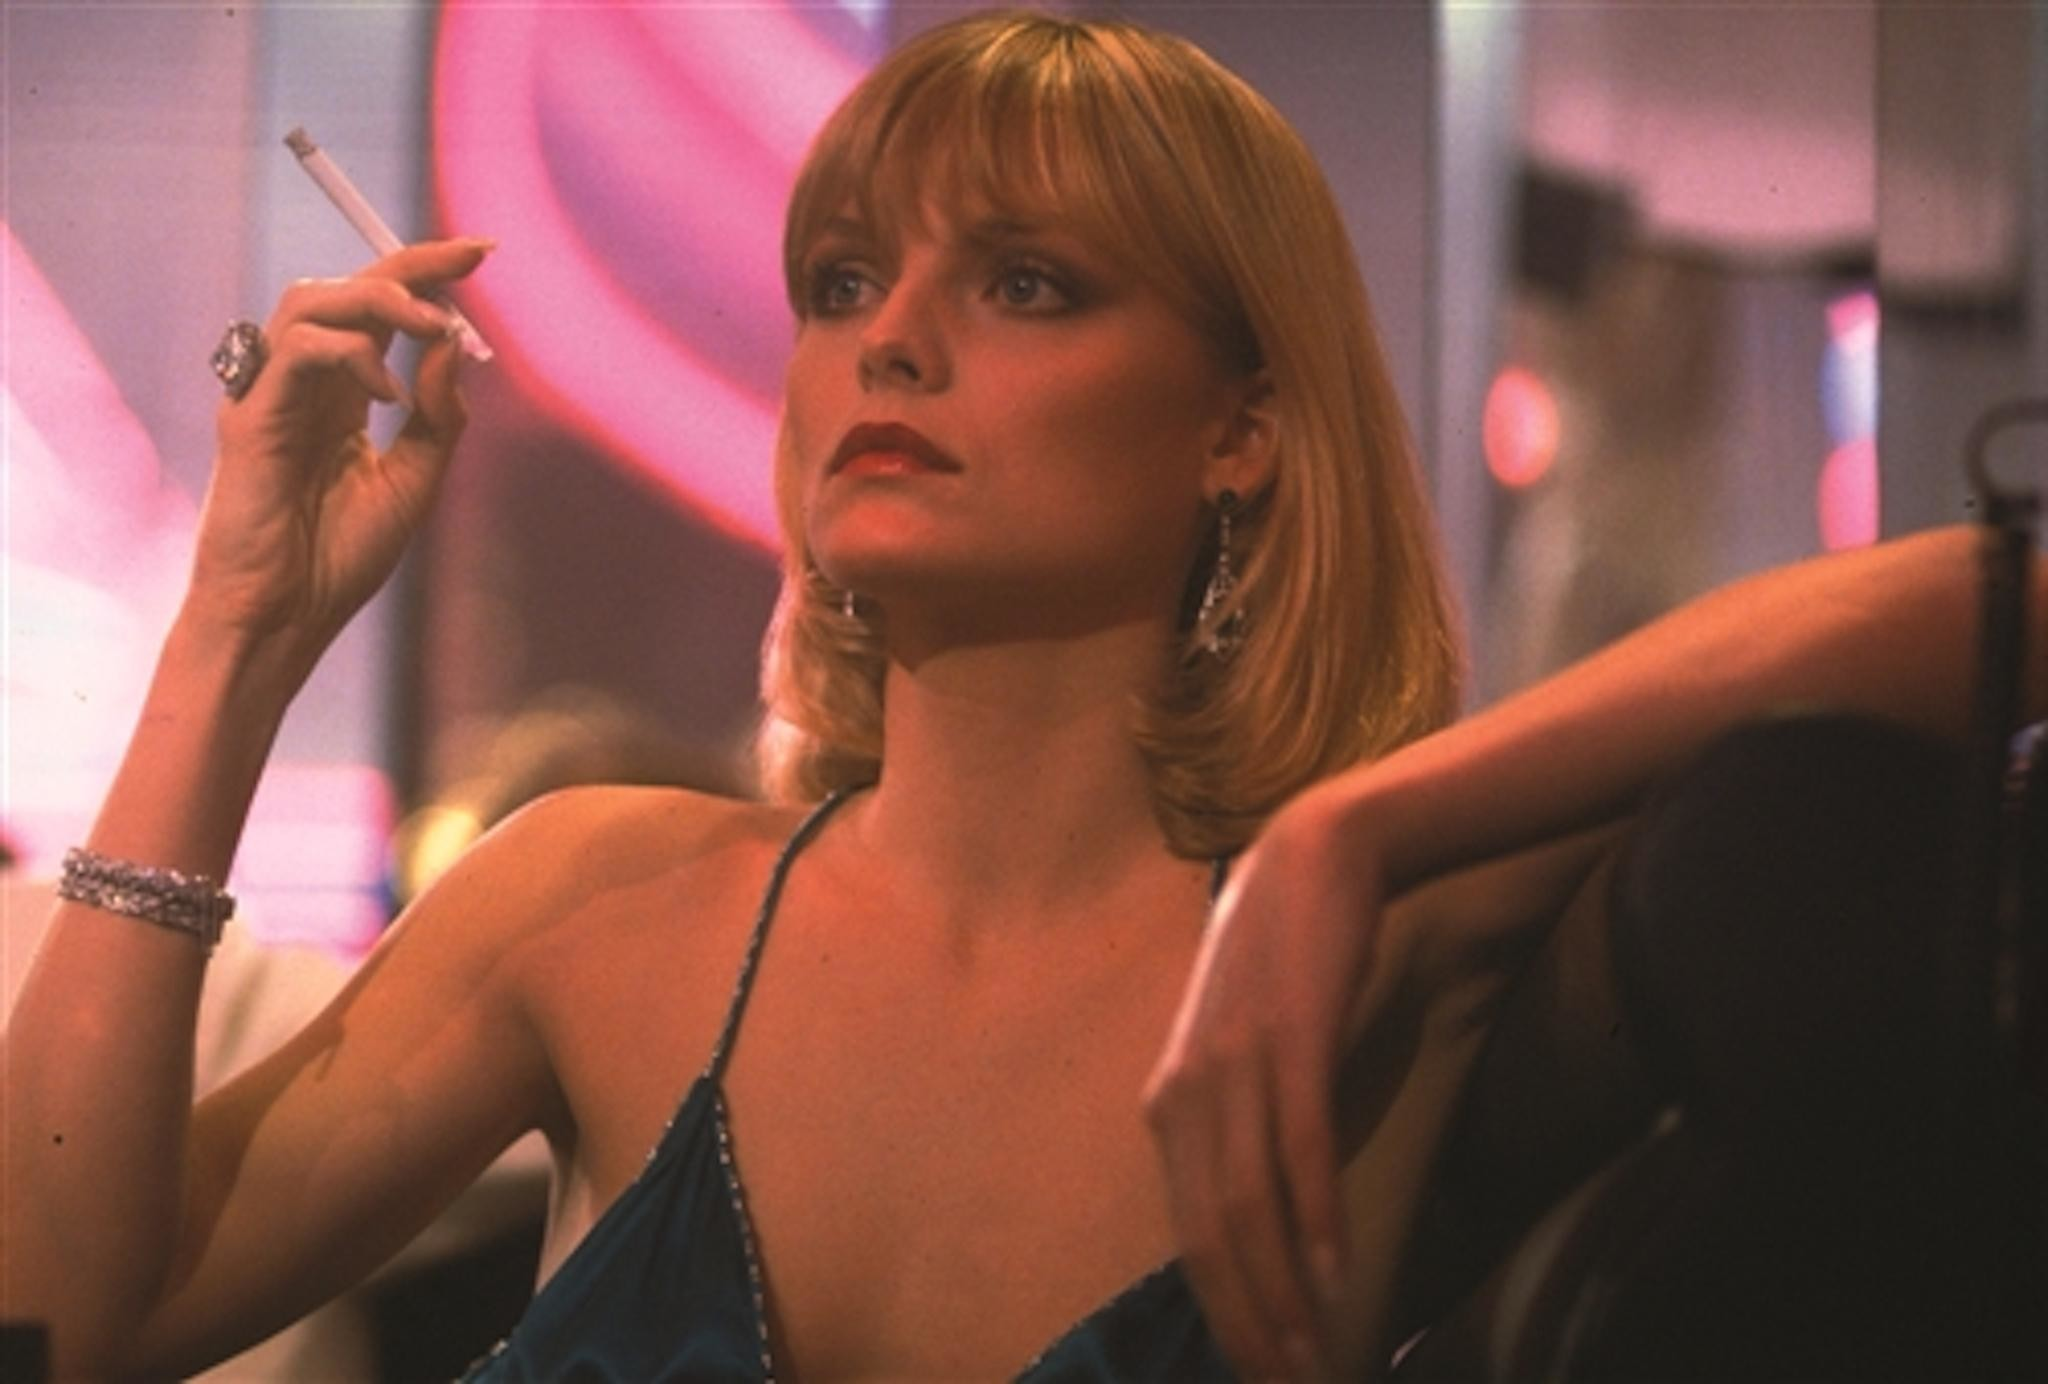 Michelle Pfeiffer Scarface Hd Images 3 HD Wallpapers